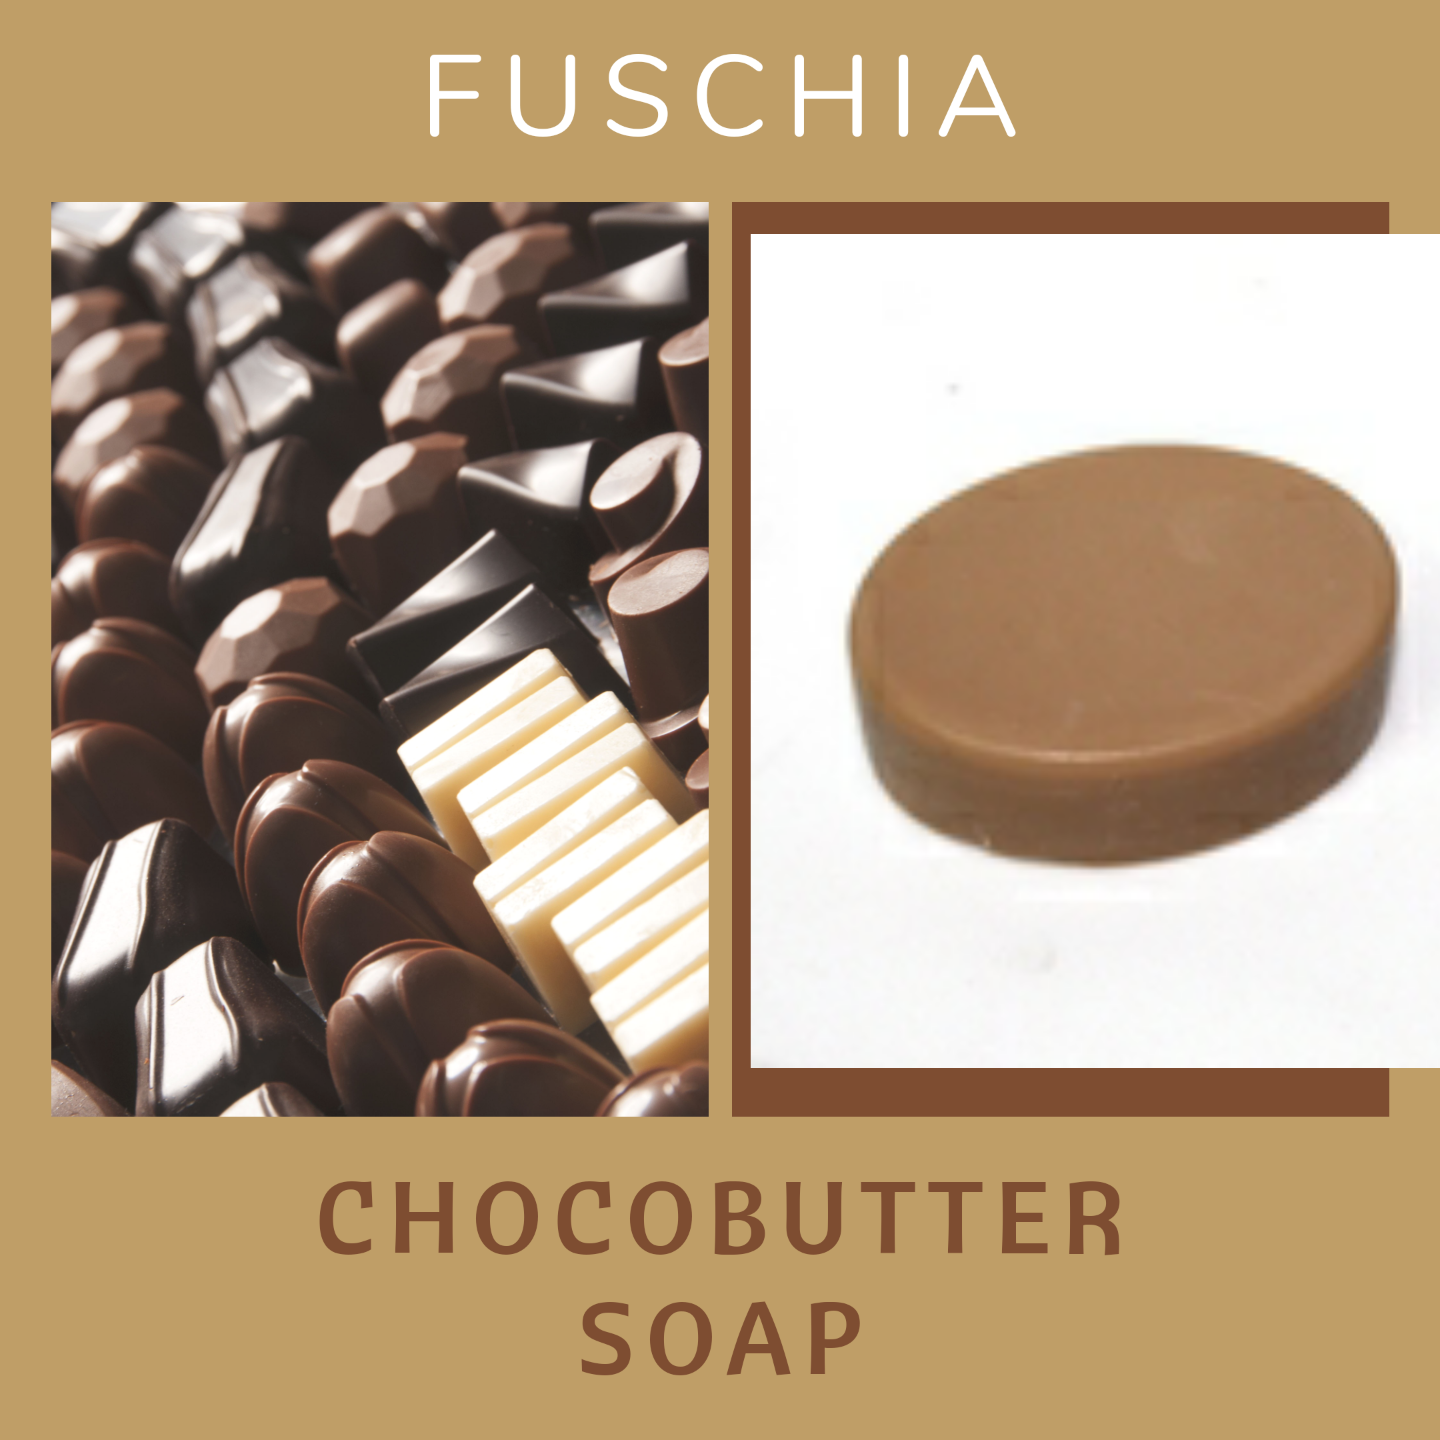 Fuschia - Chocobutter Natural Handmade Glycerine Soap